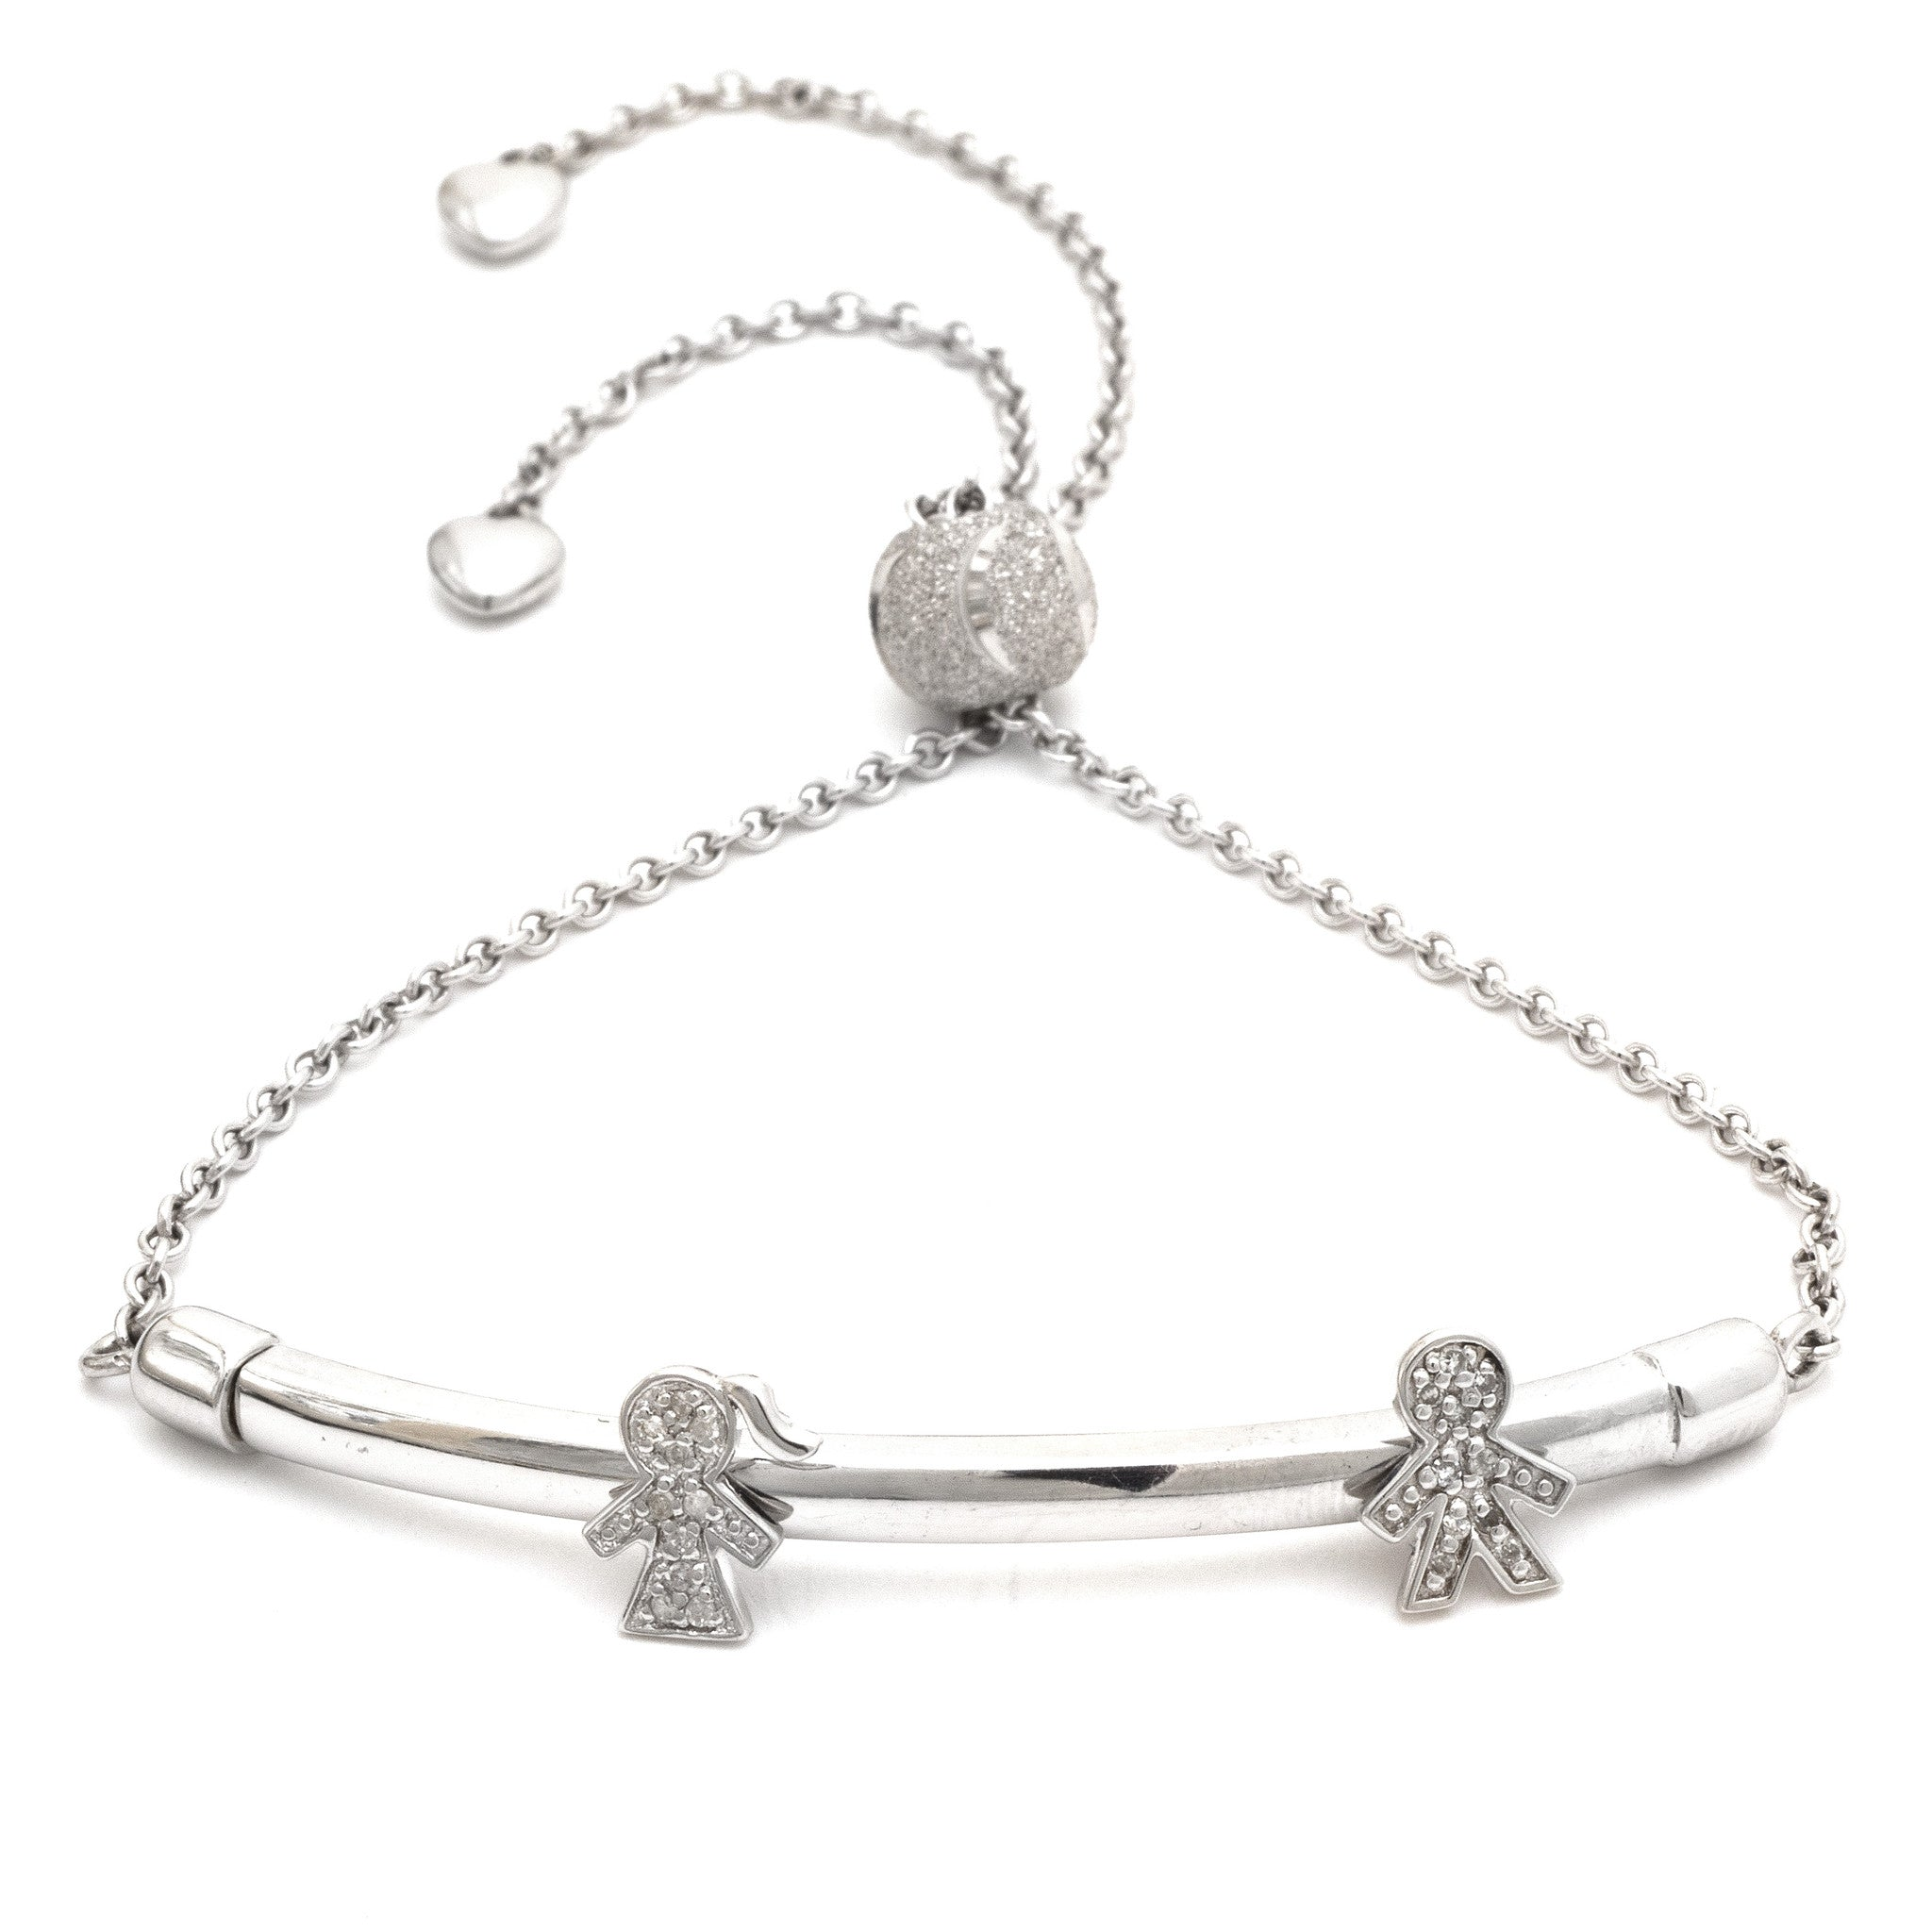 slider jewellery bead sterling bracelet silver rhodium plated